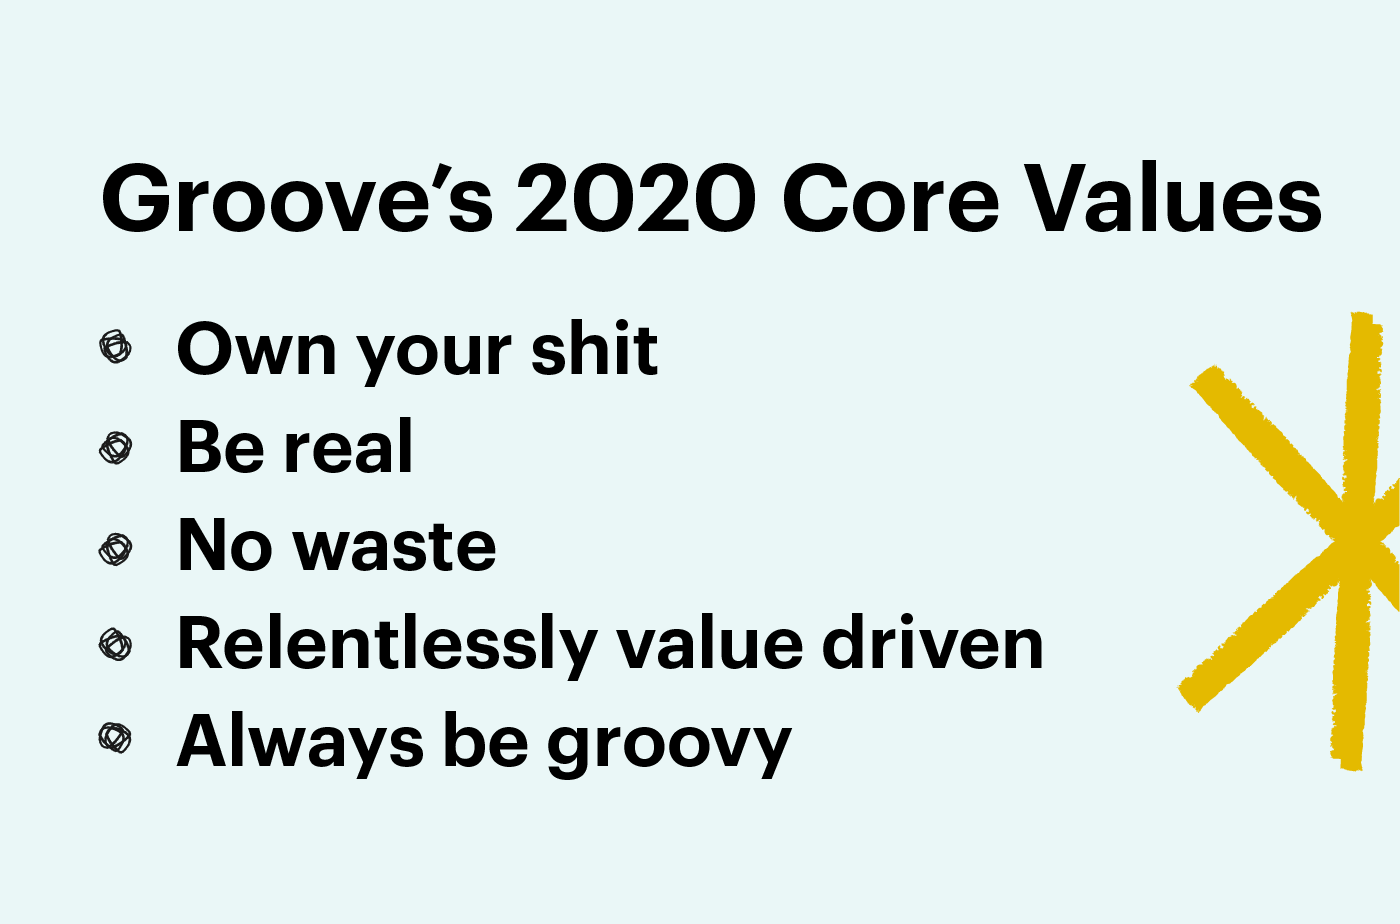 grooves core values for small business customer service